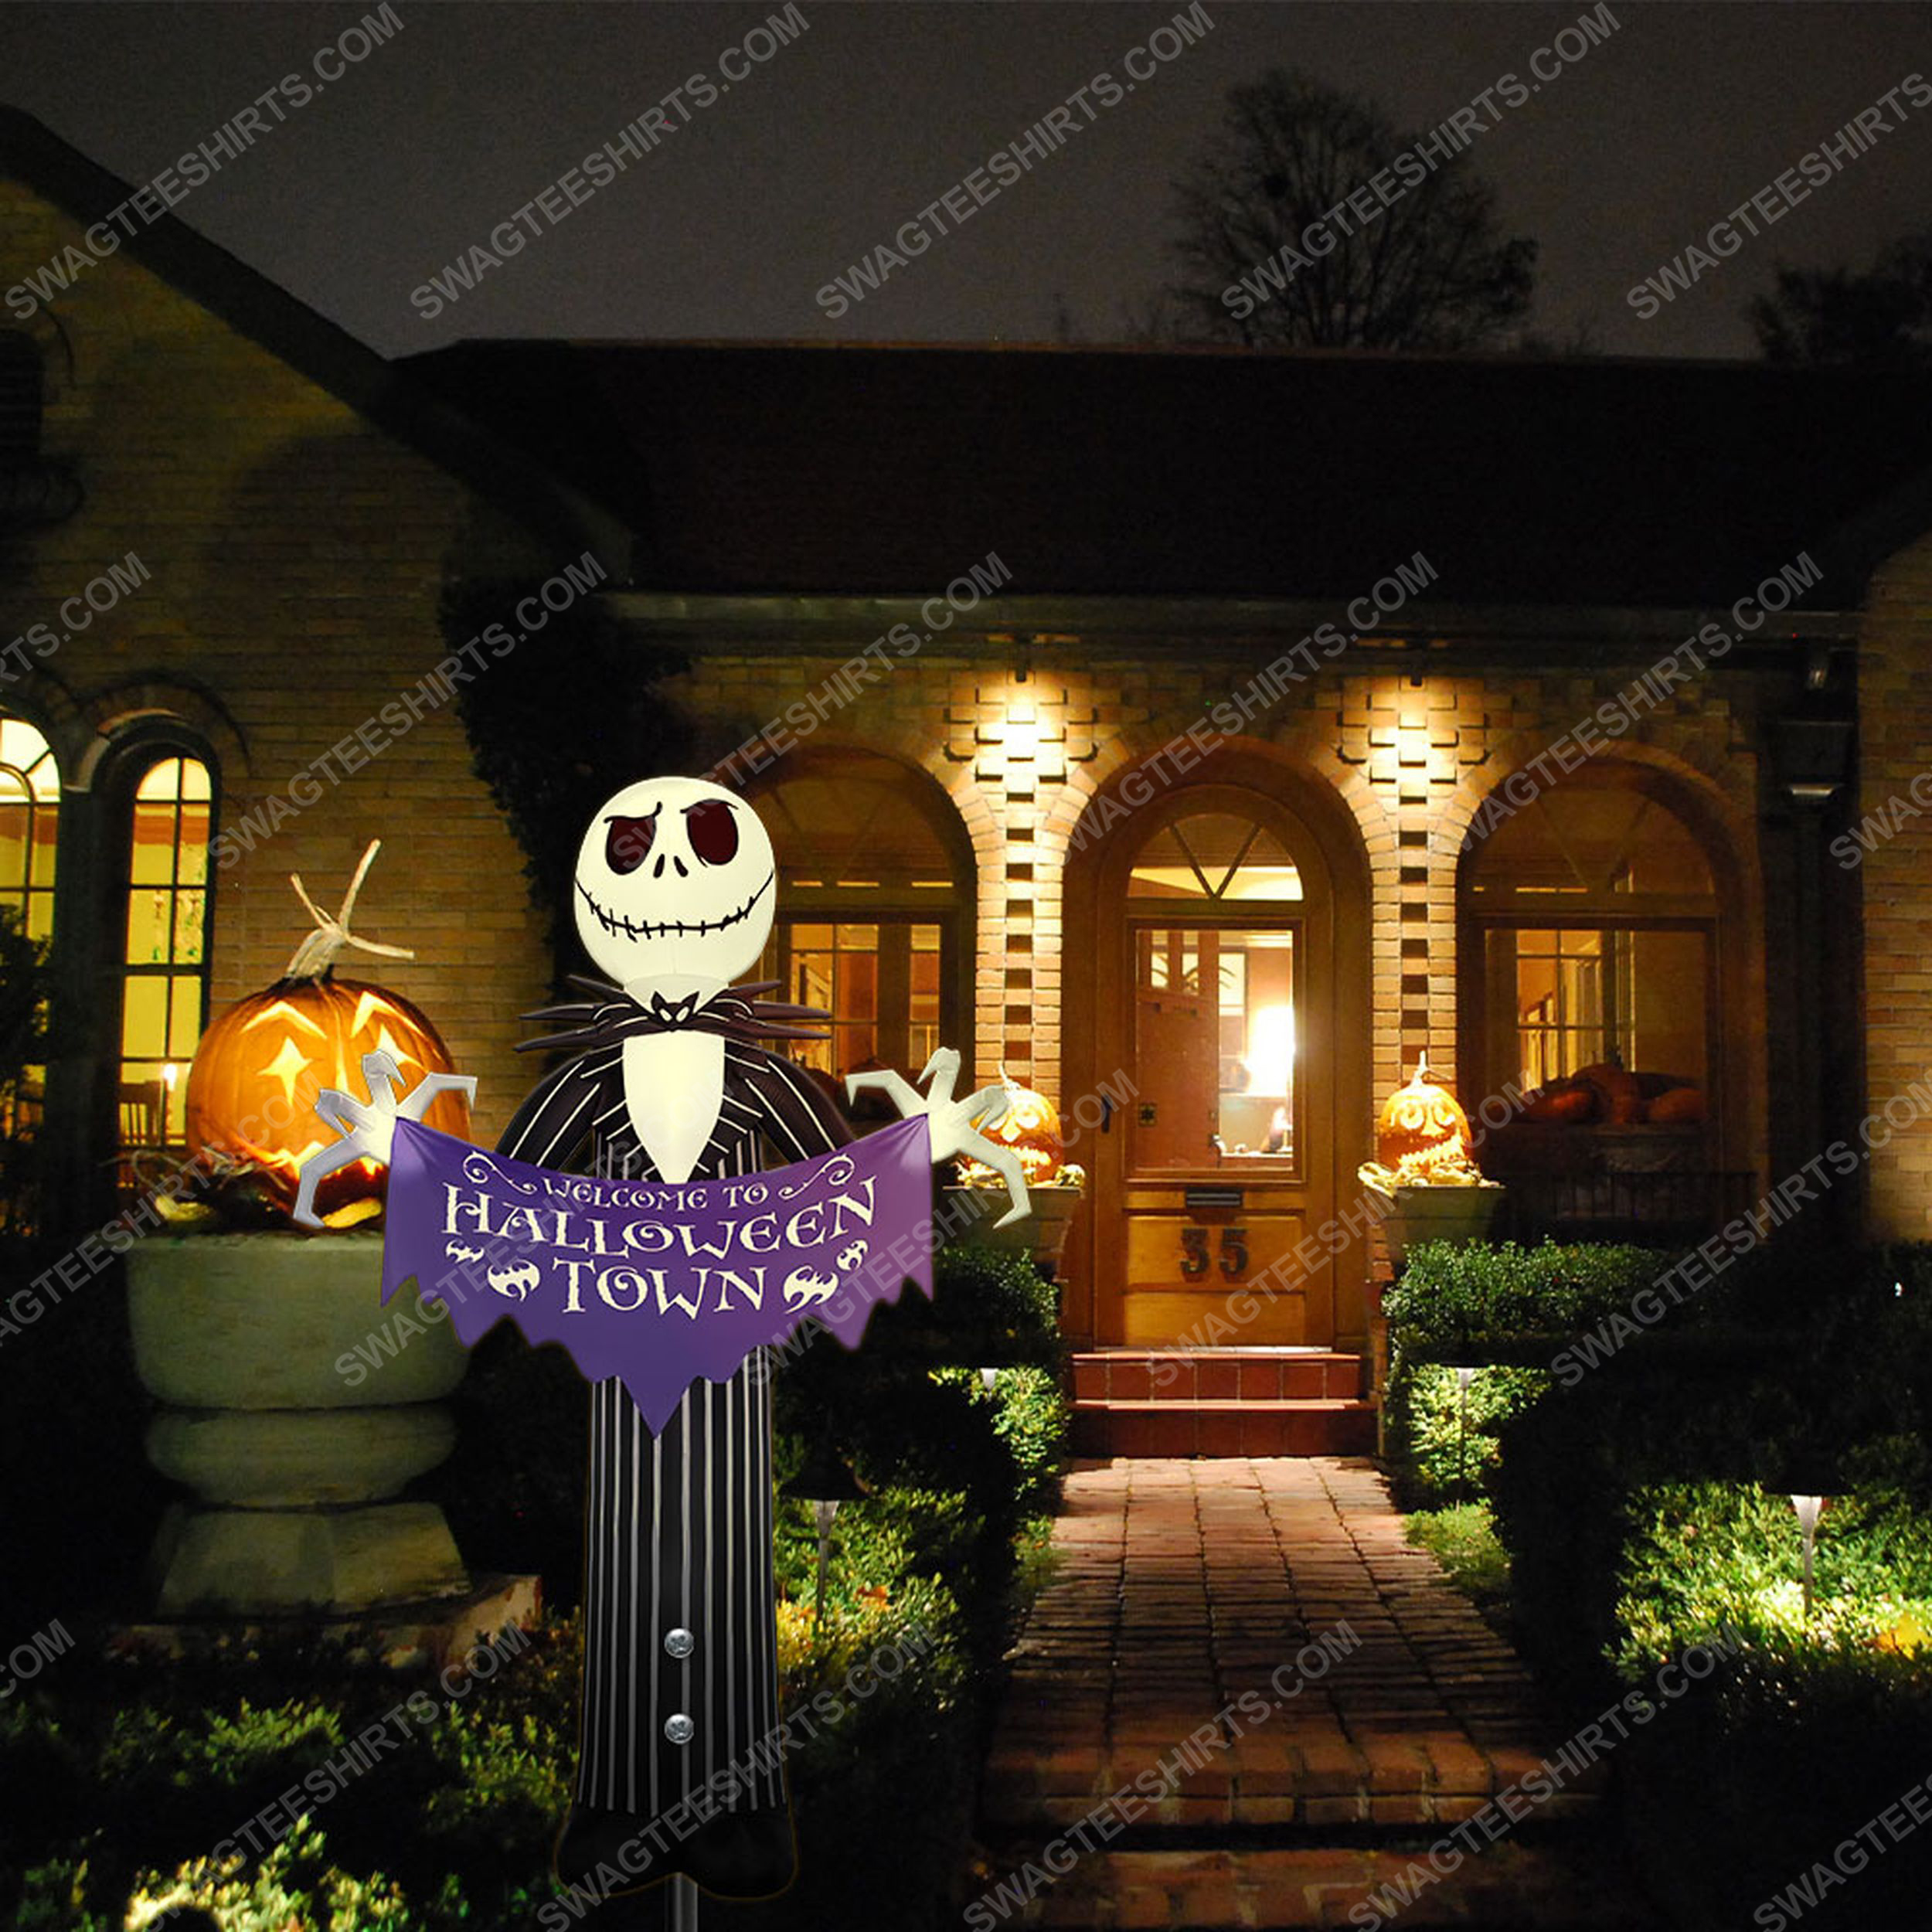 Jack skellington welcome to halloween town yard sign 4(1)